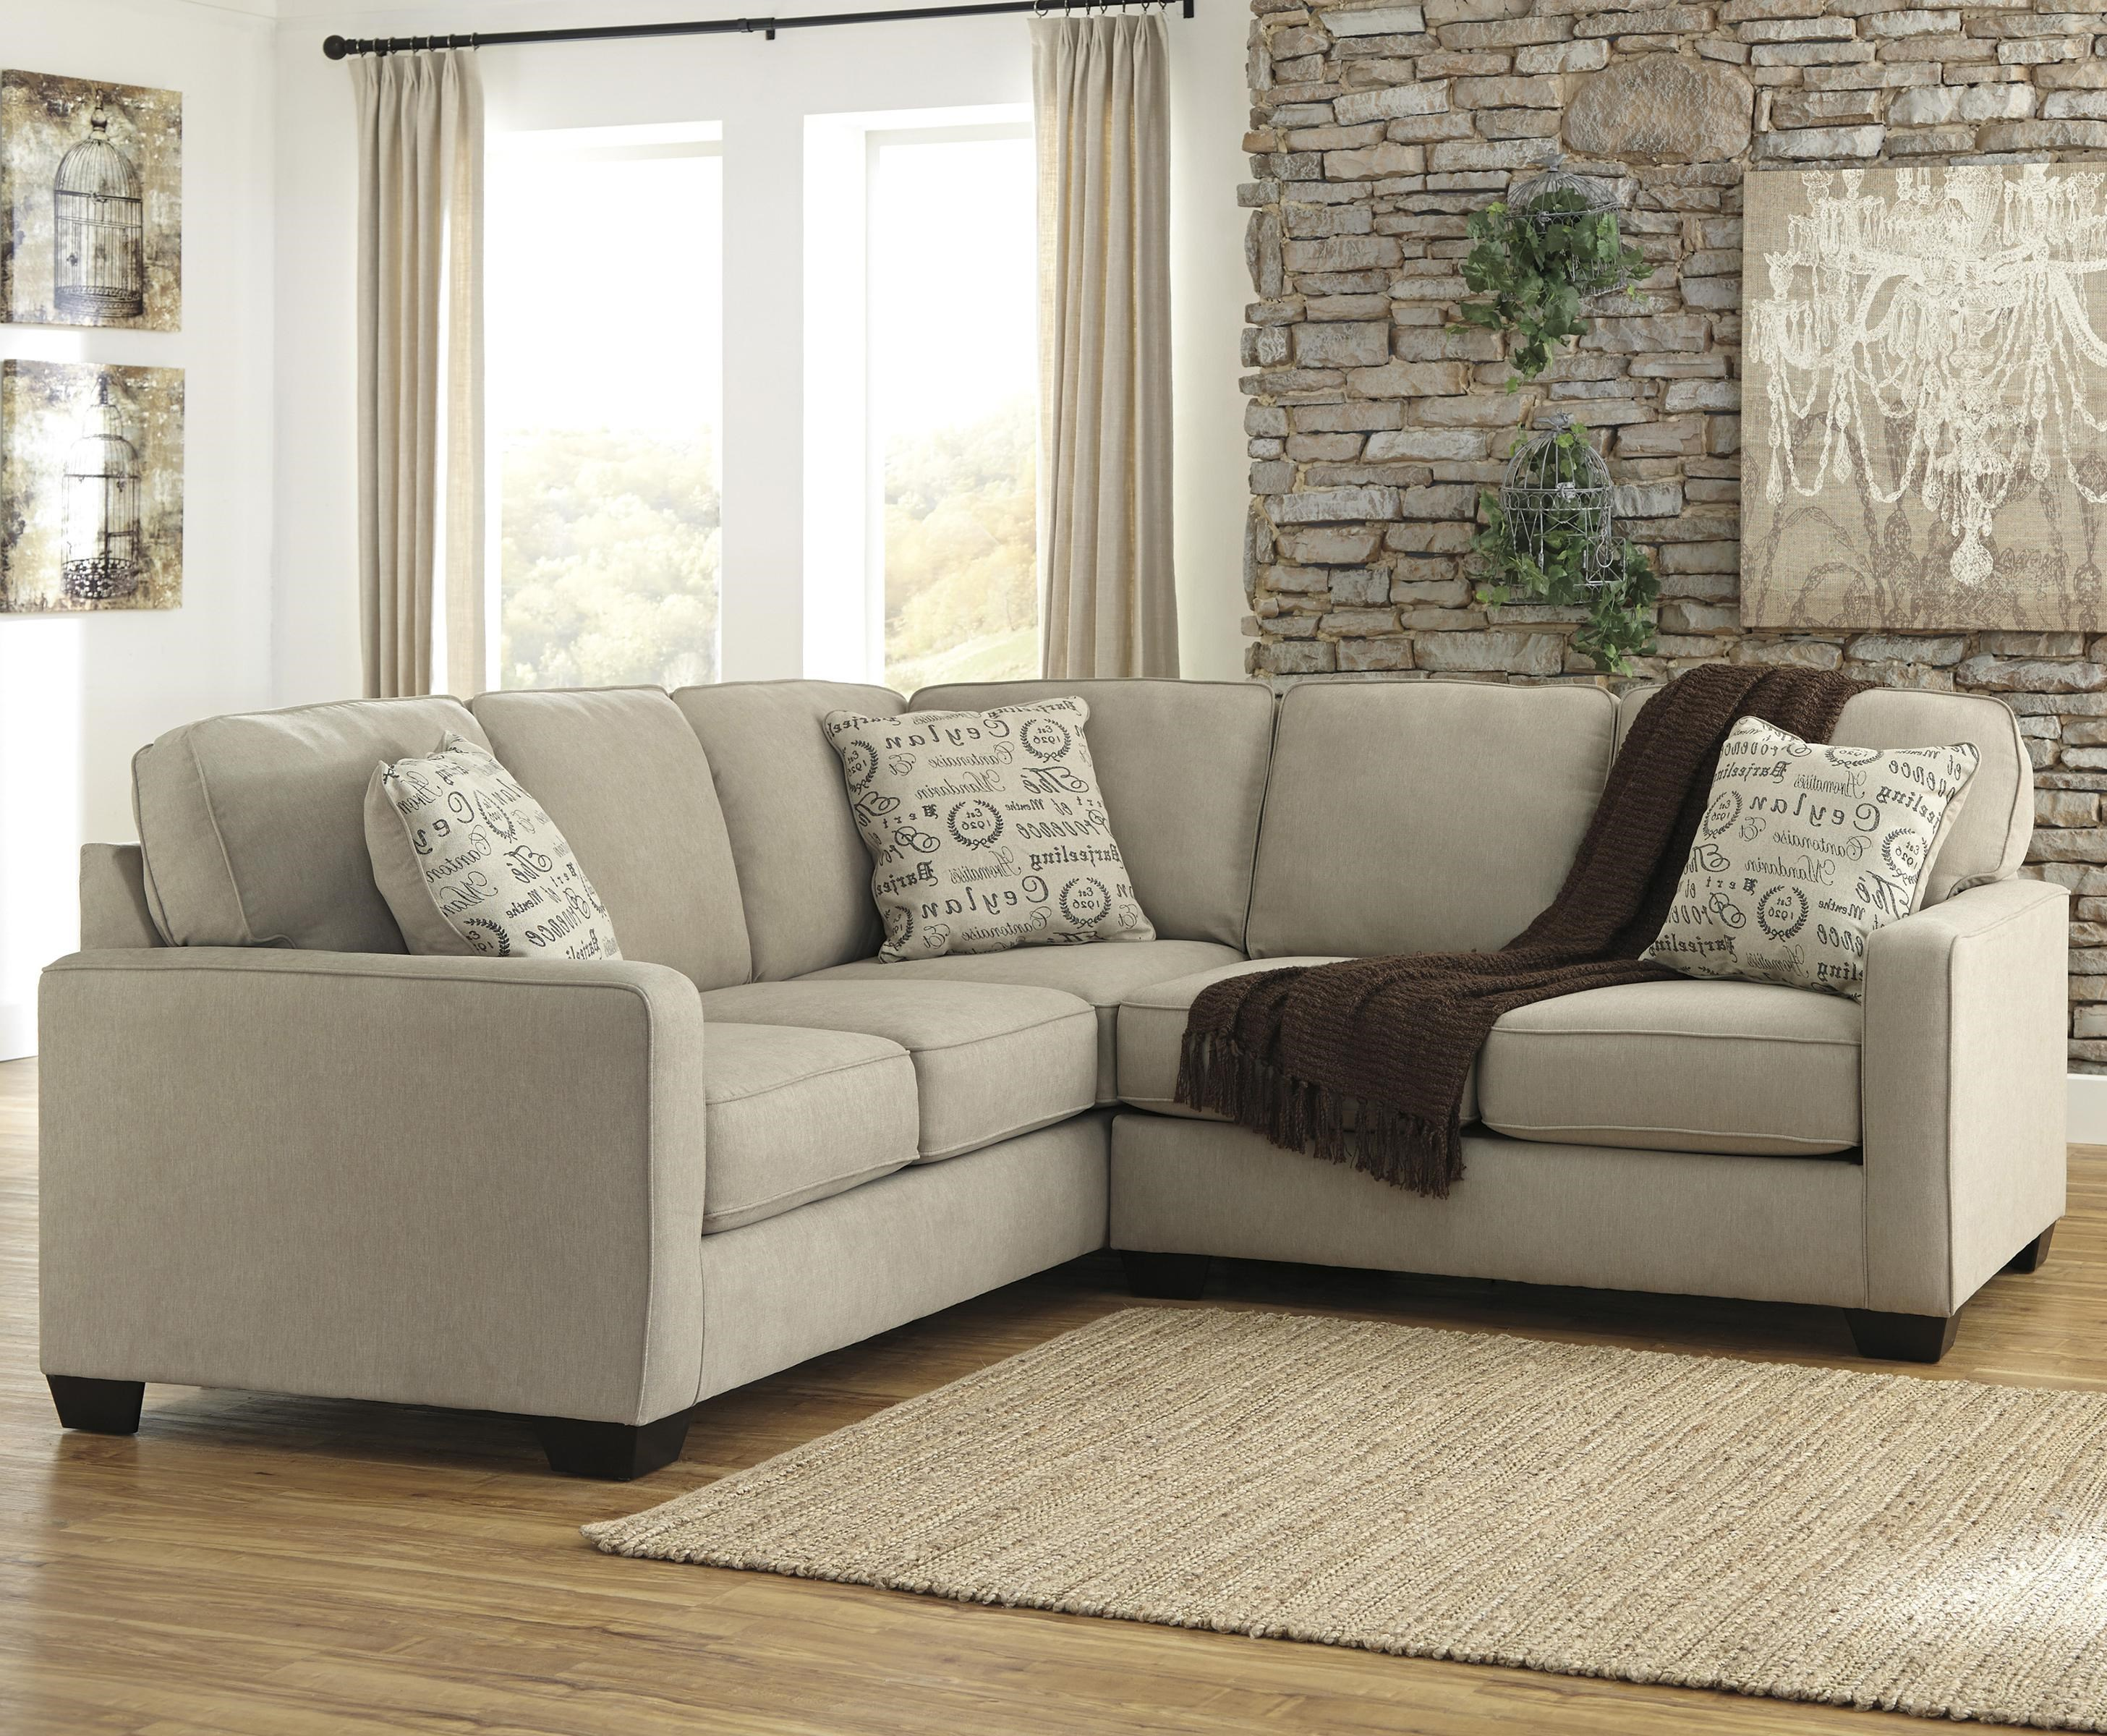 Signature Design by Ashley Alenya - Quartz 2-Piece Sectional with Right Loveseat - Dream Home ...